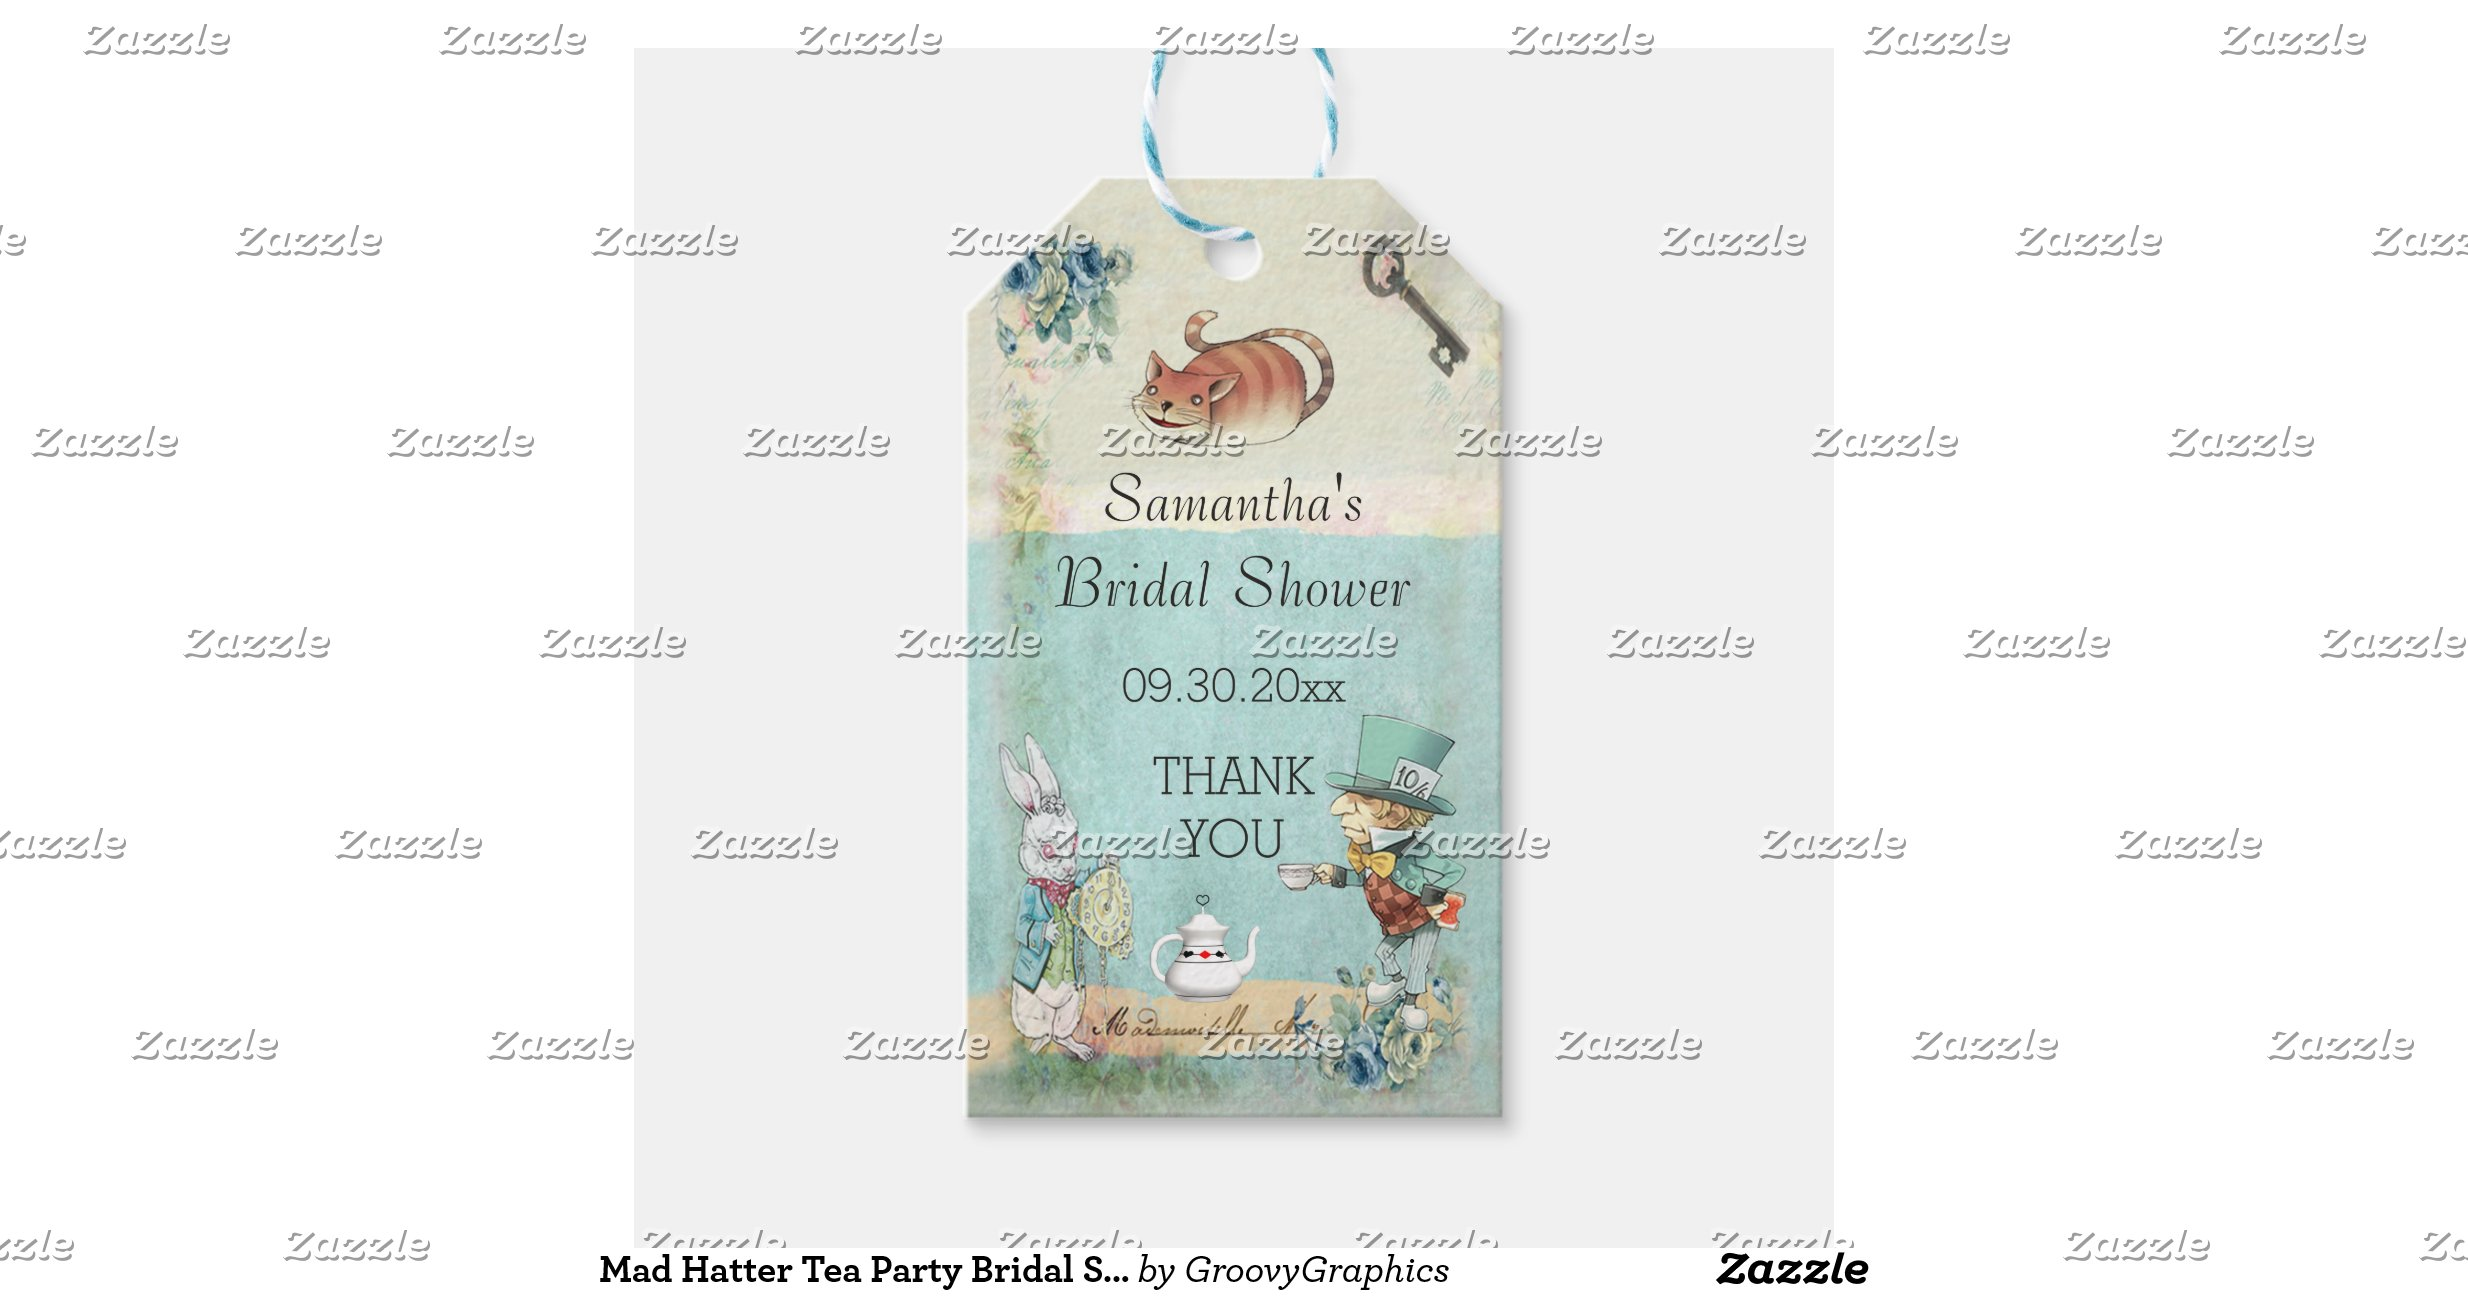 Baby Gift Ideas Under $10 : Mad hatter tea party bridal shower thank you pack of gift